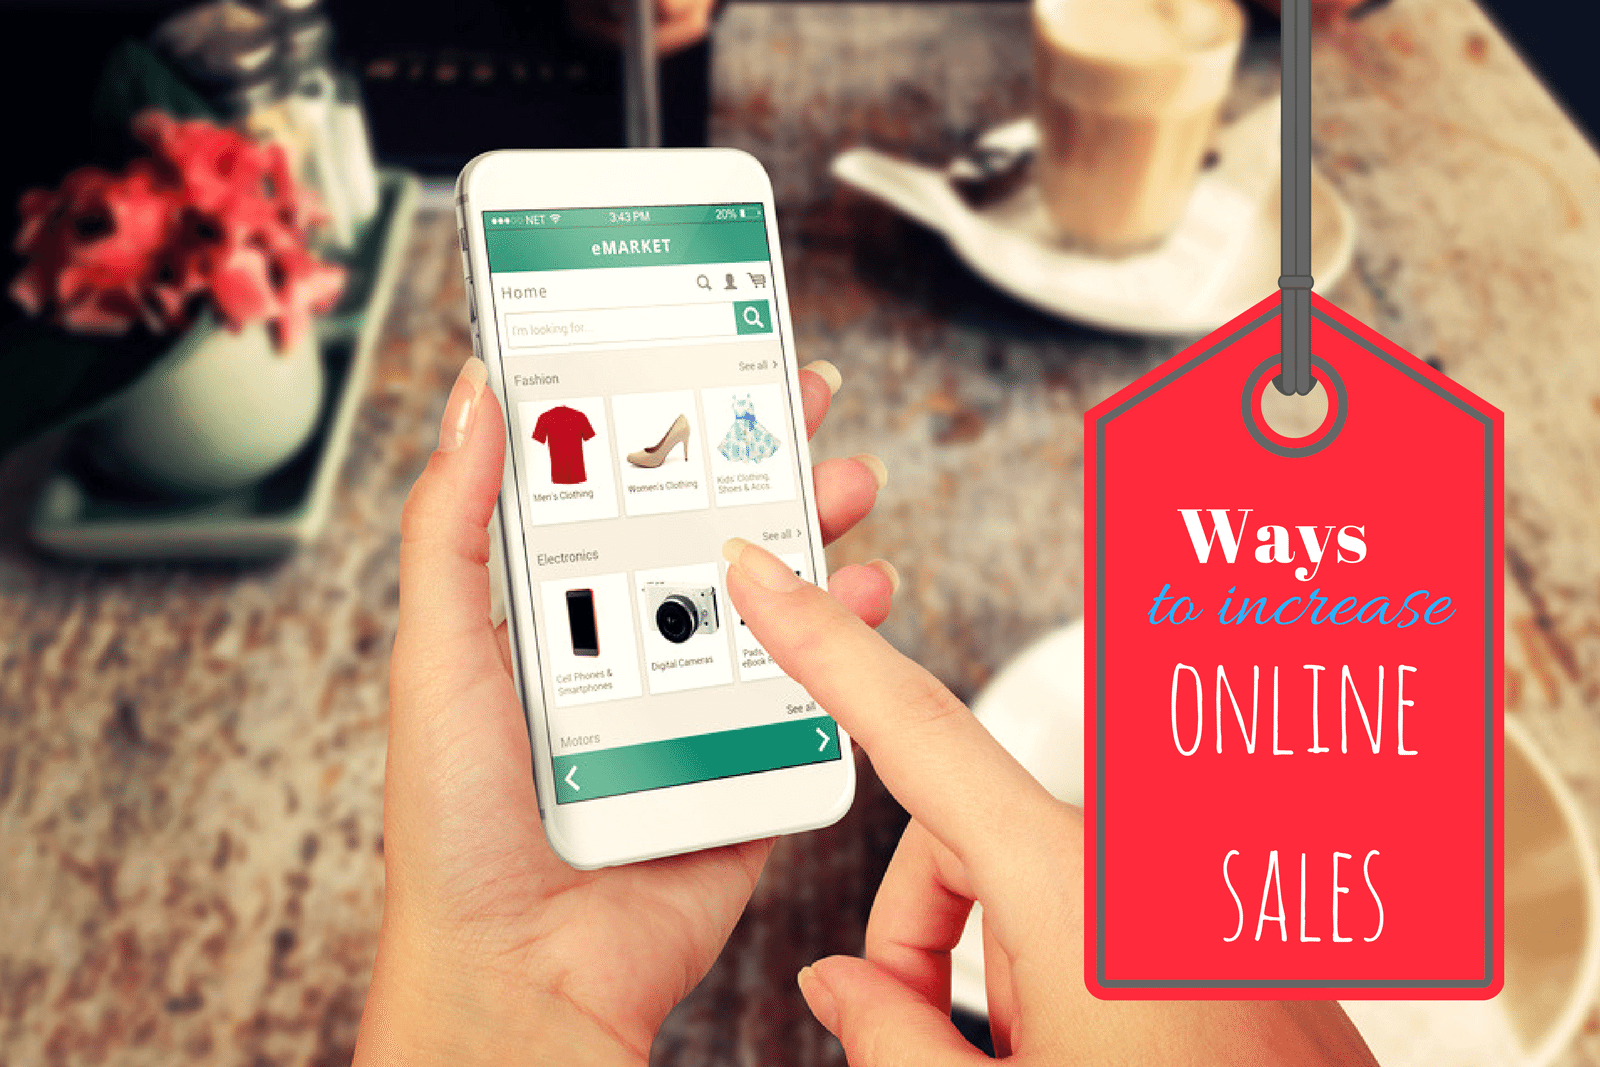 ways-to-increase-online-sales